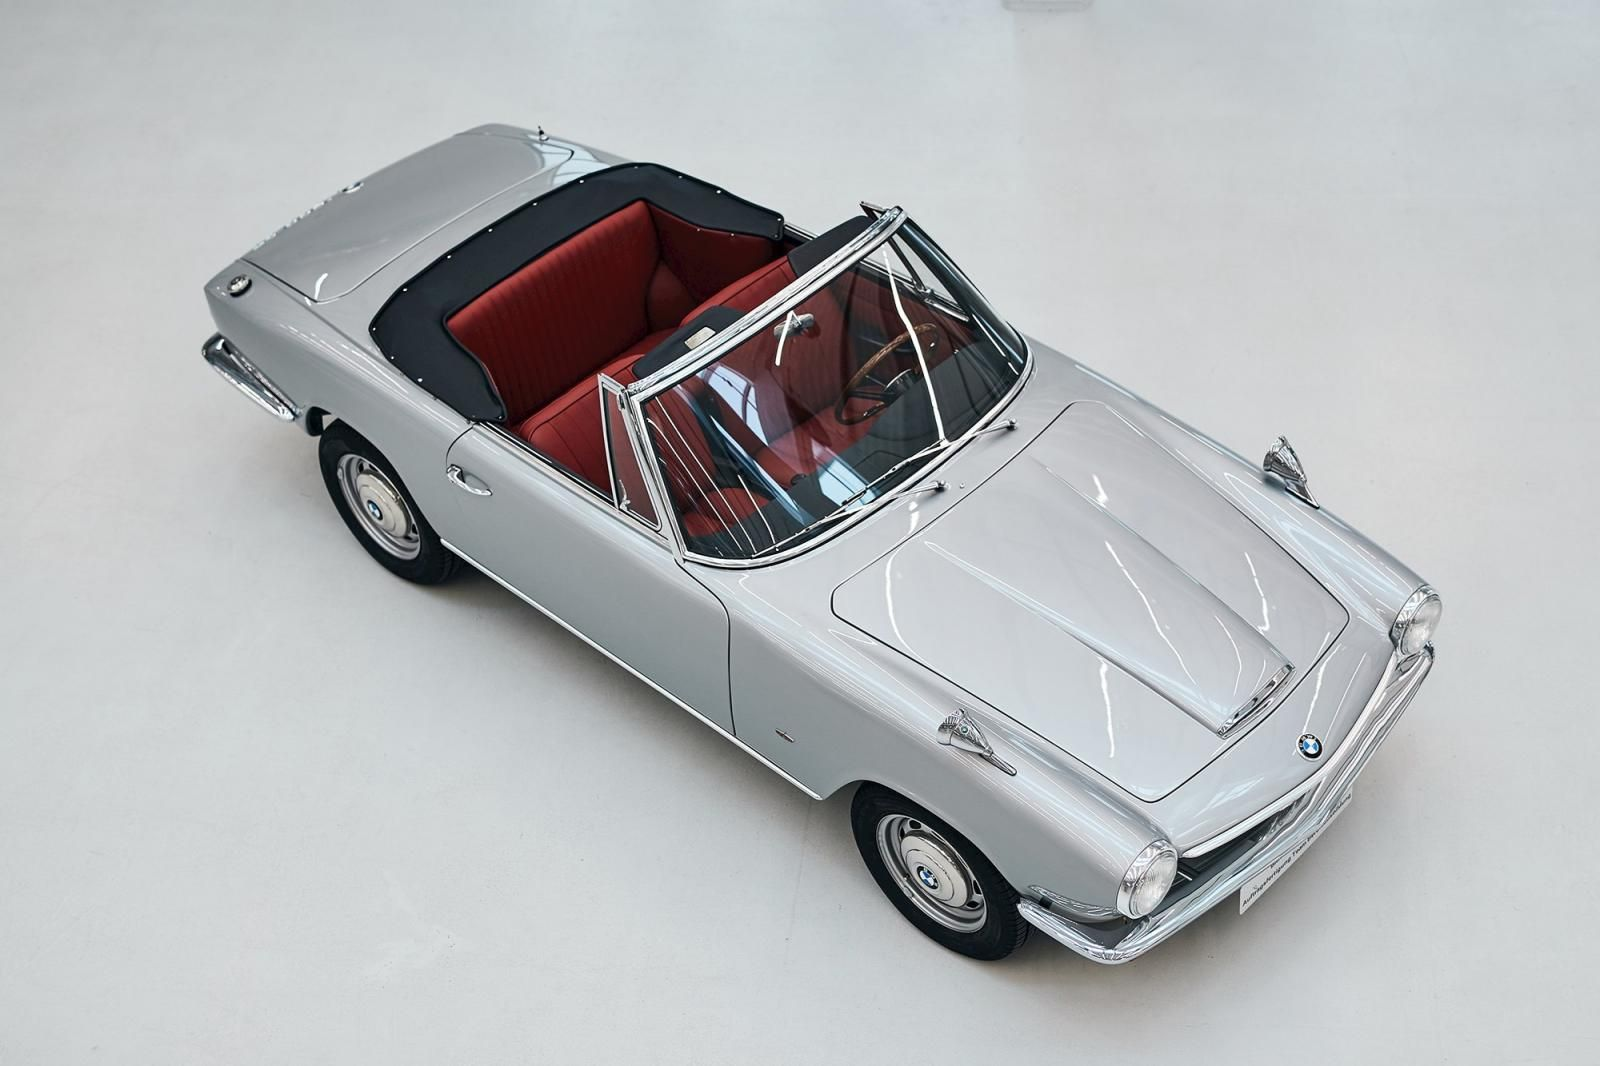 a-bmw-gt-1600-convertible-from-above